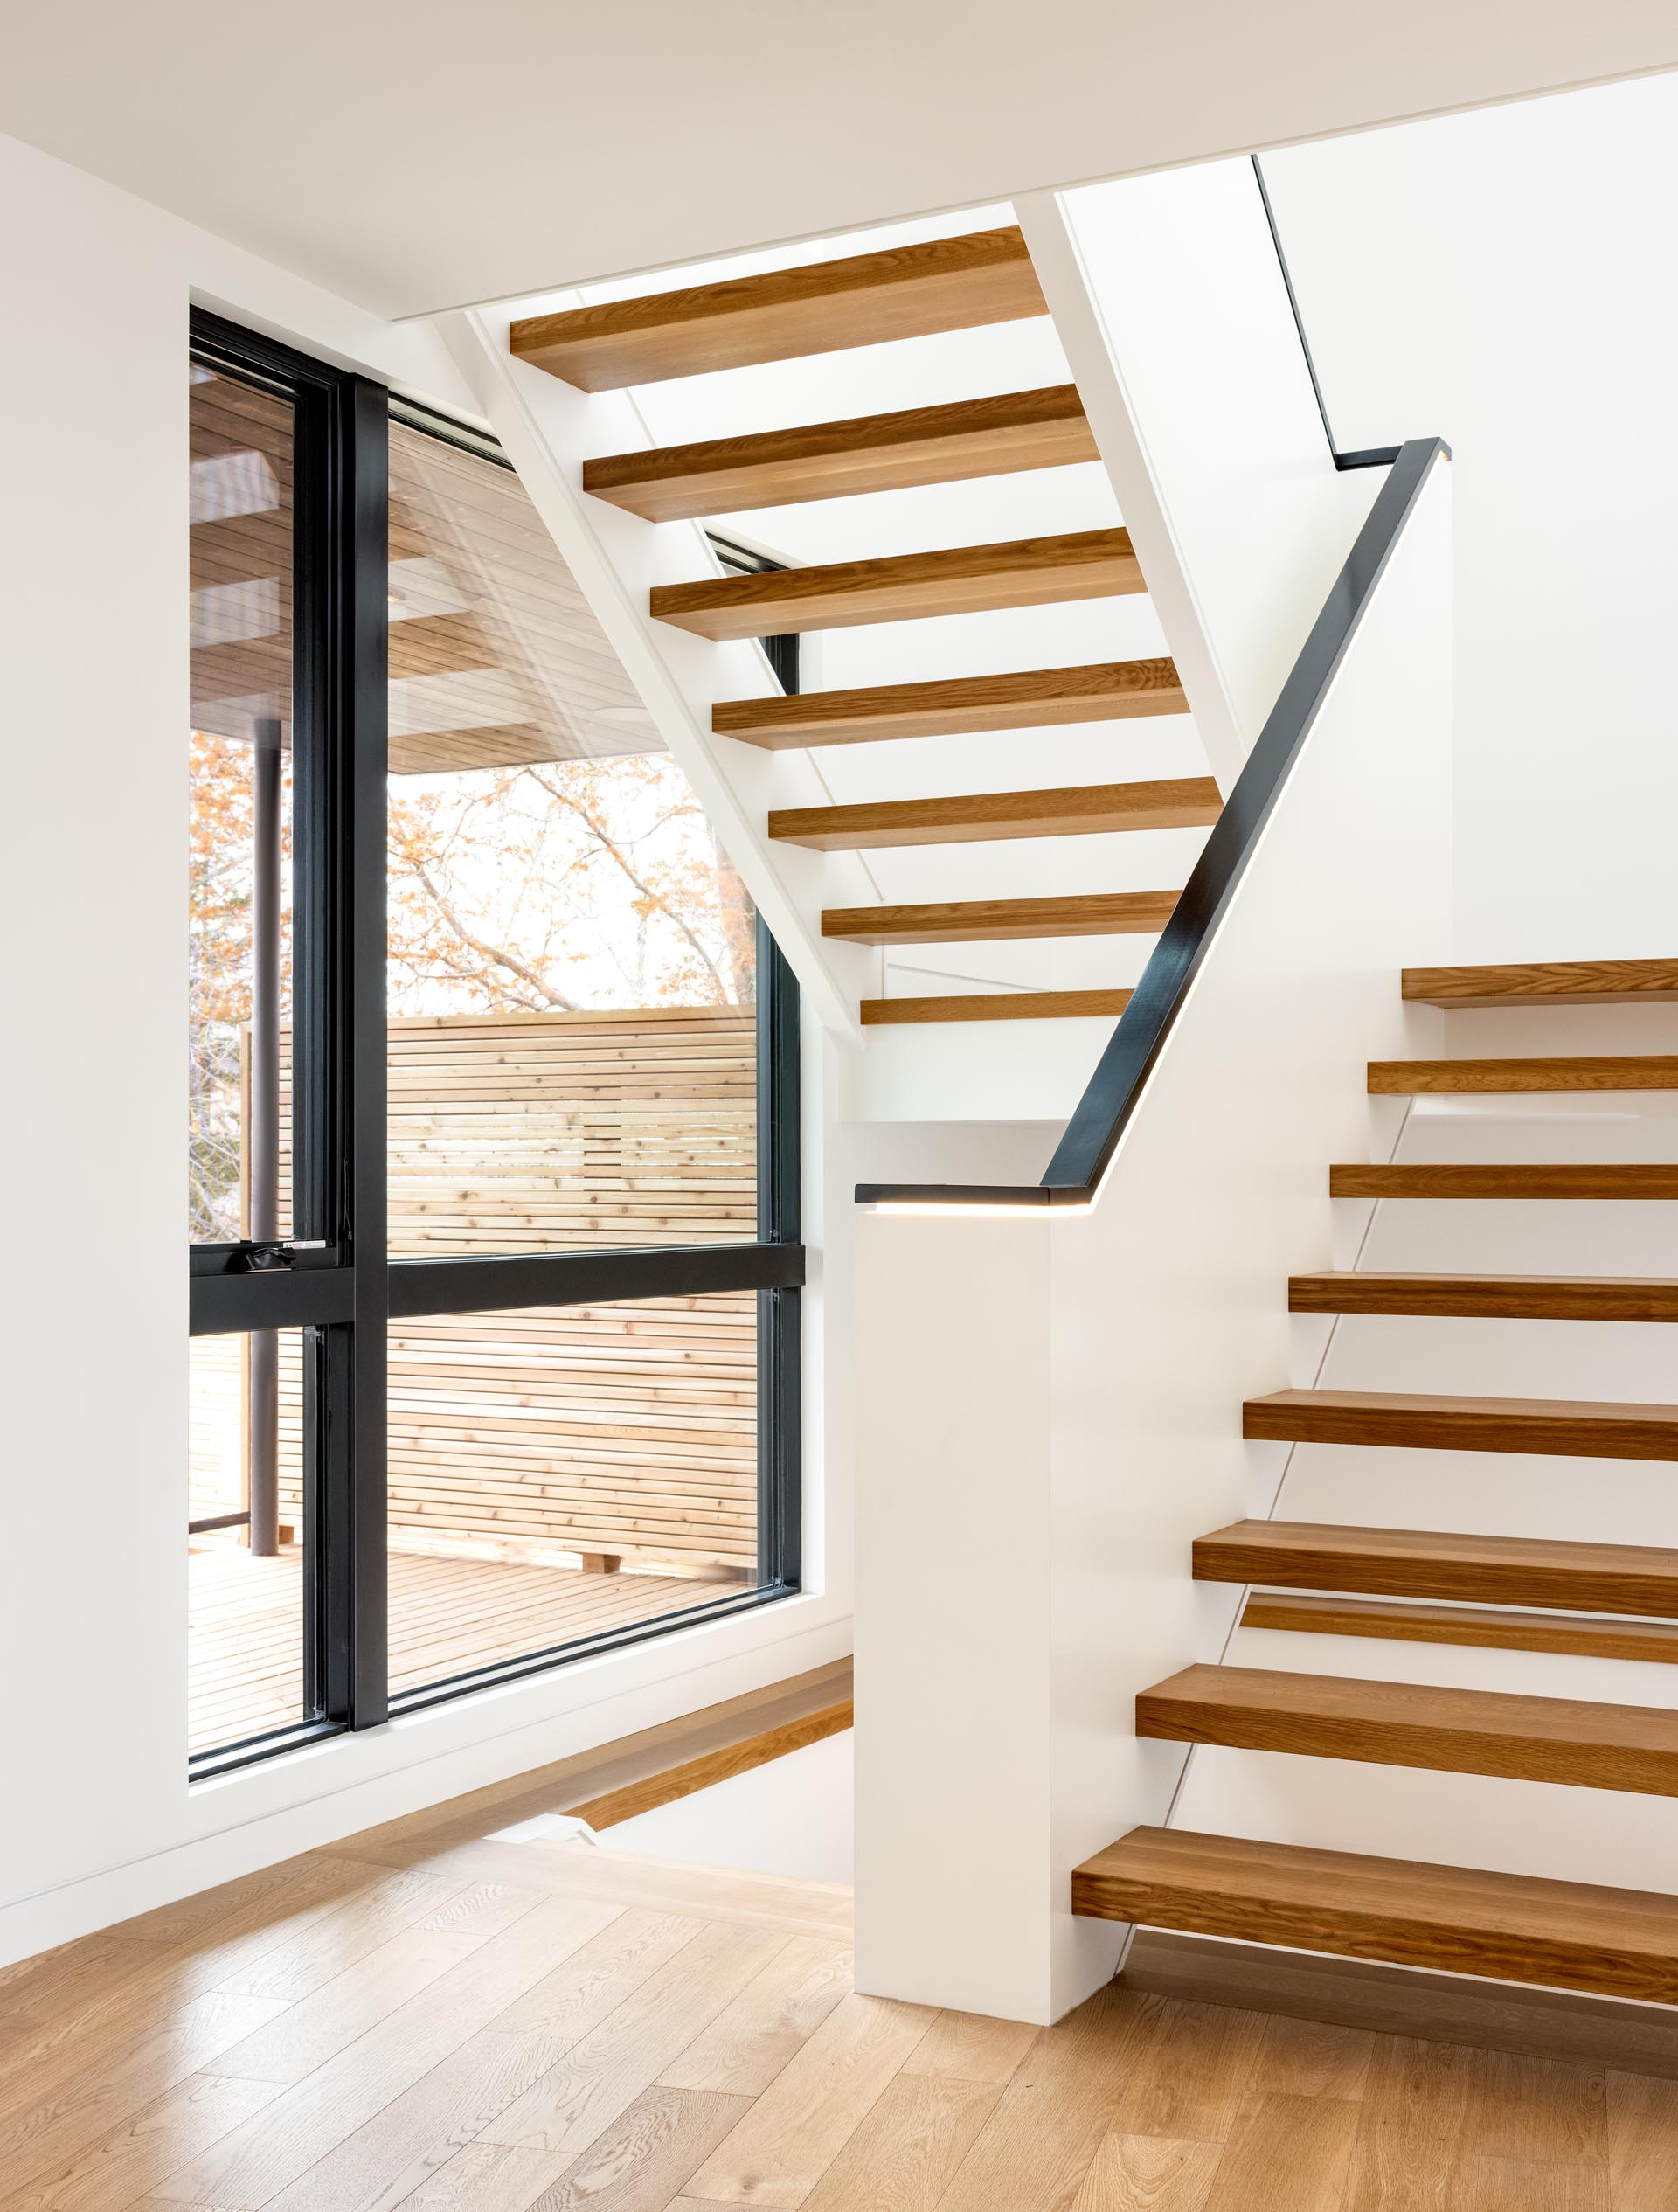 A staircase with wood treads and a black handrail with hidden LED lighting connects to the upper floor of the home.